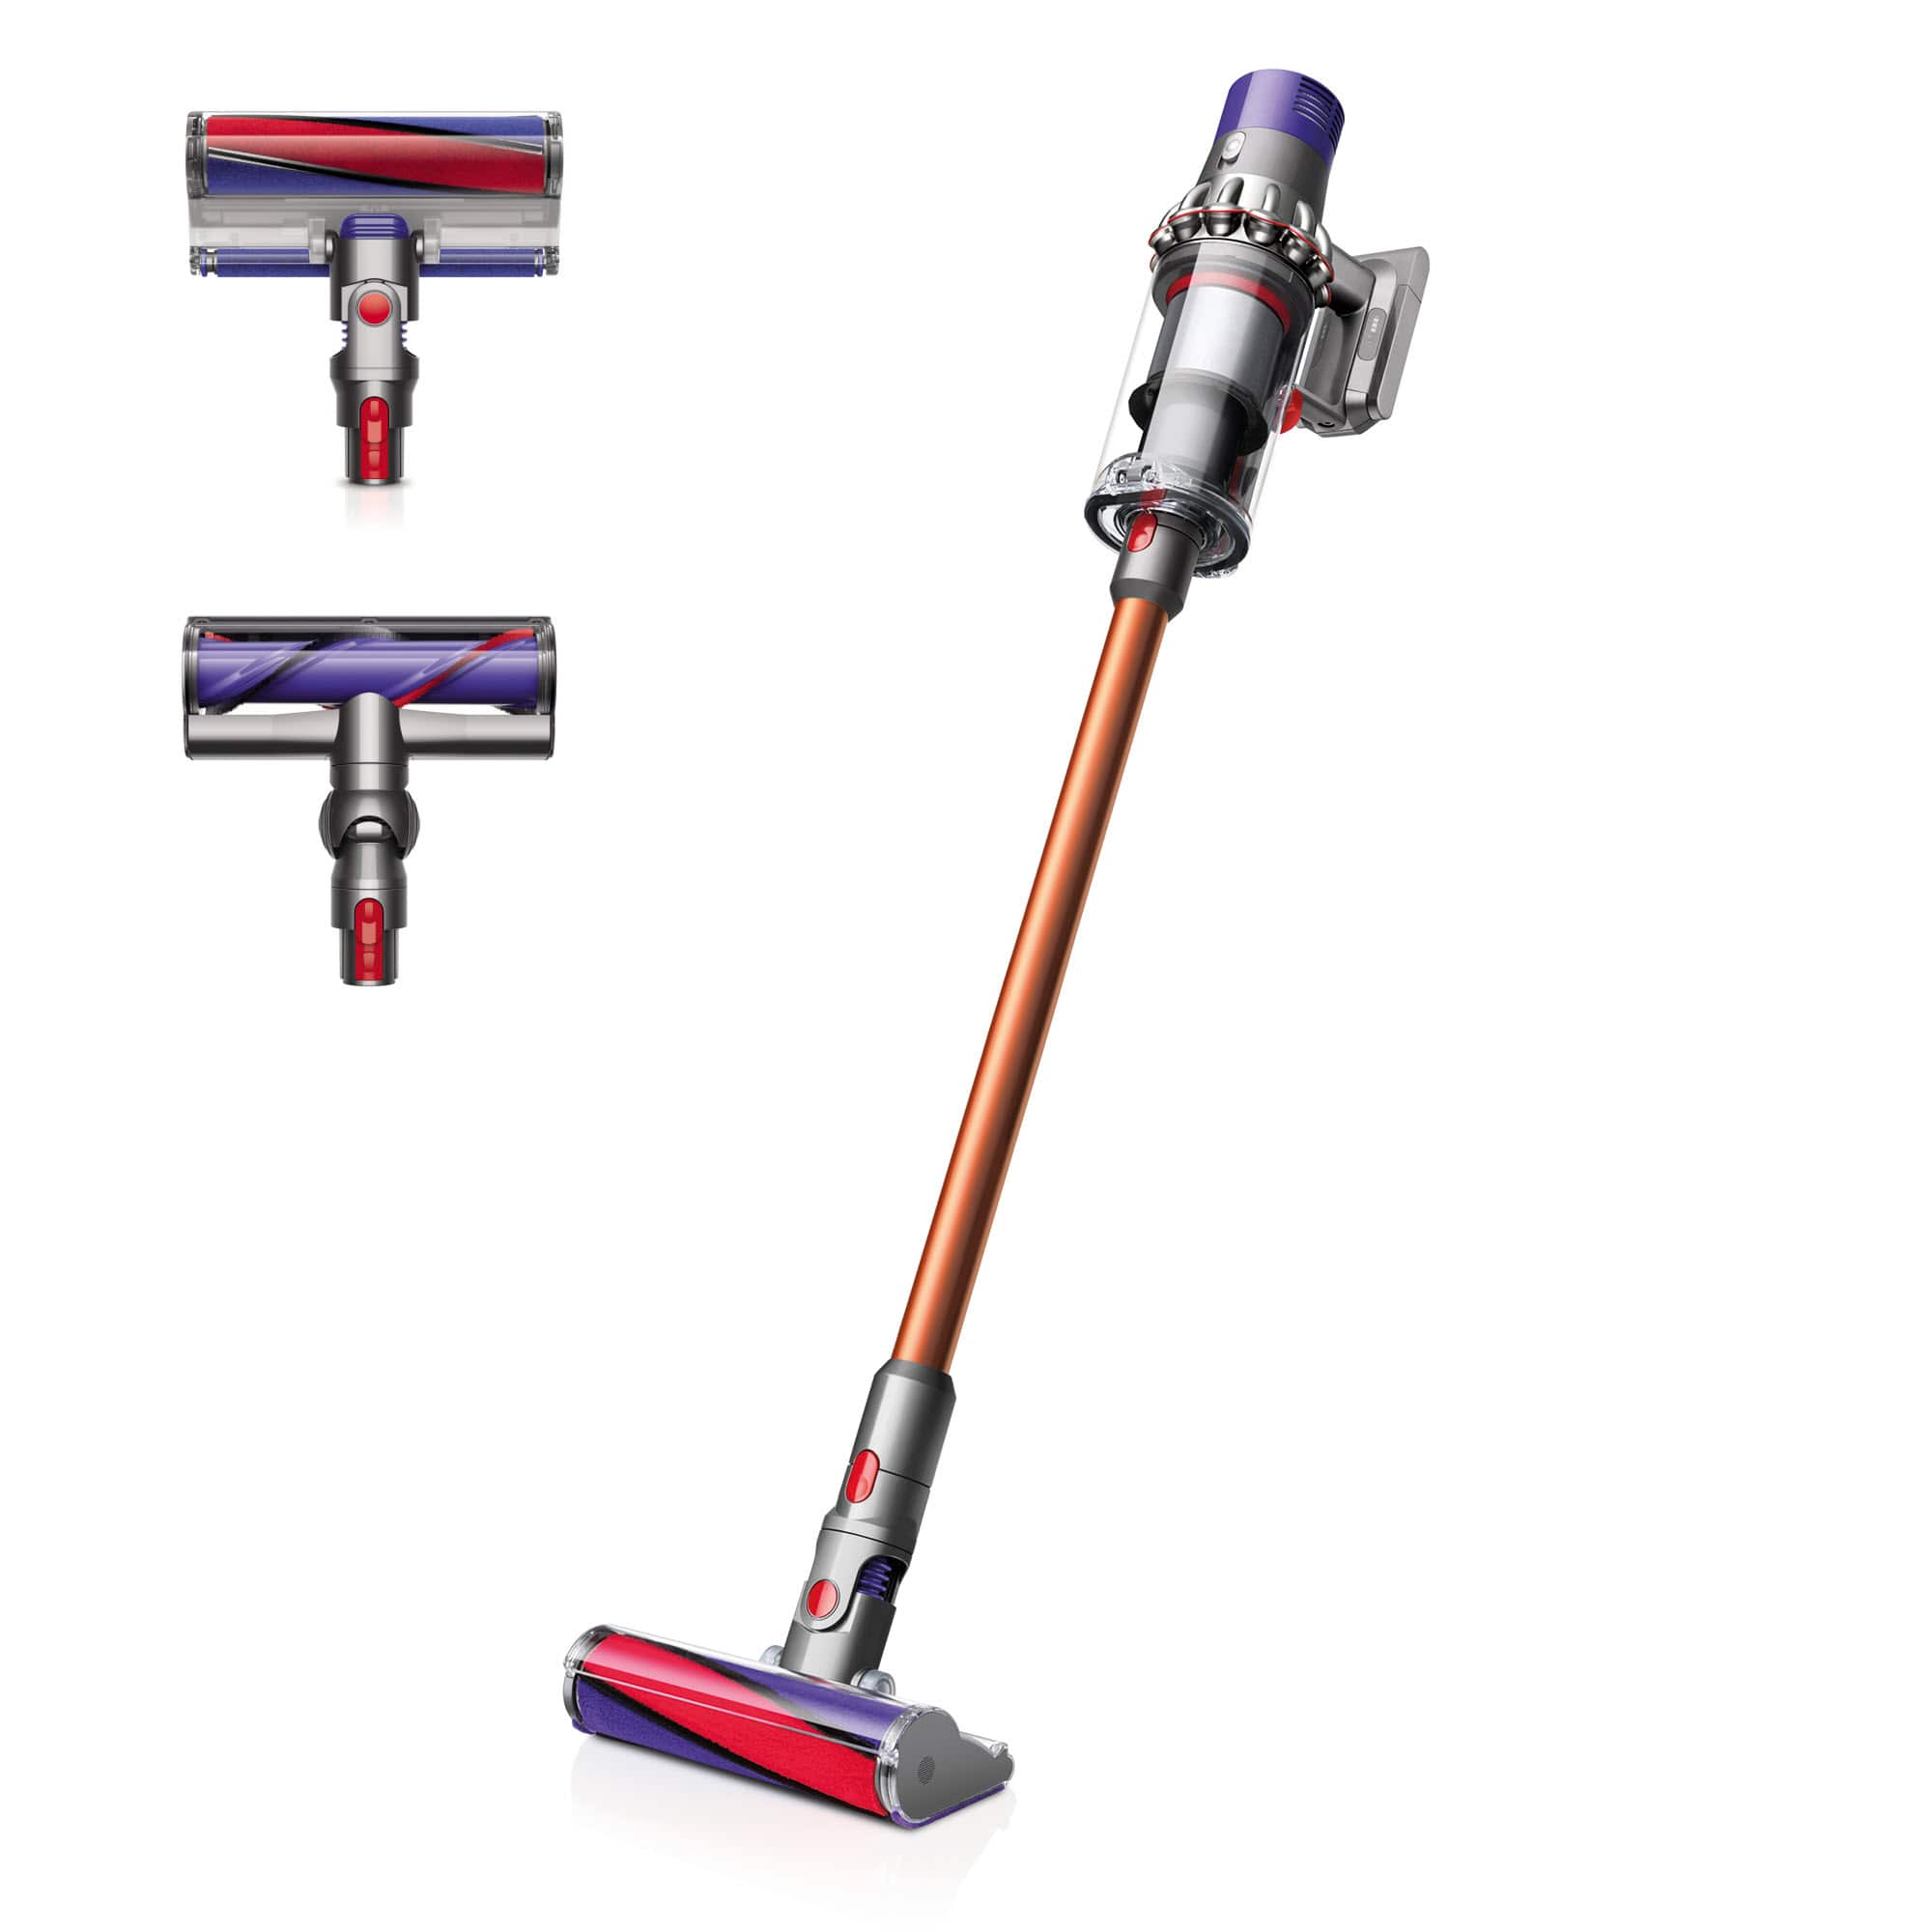 Walmart.com - Dyson V10 Absolute Cordless Vacuum | Copper | Refurbished - $279.99 - Free S&H - Return to Walmart In Store